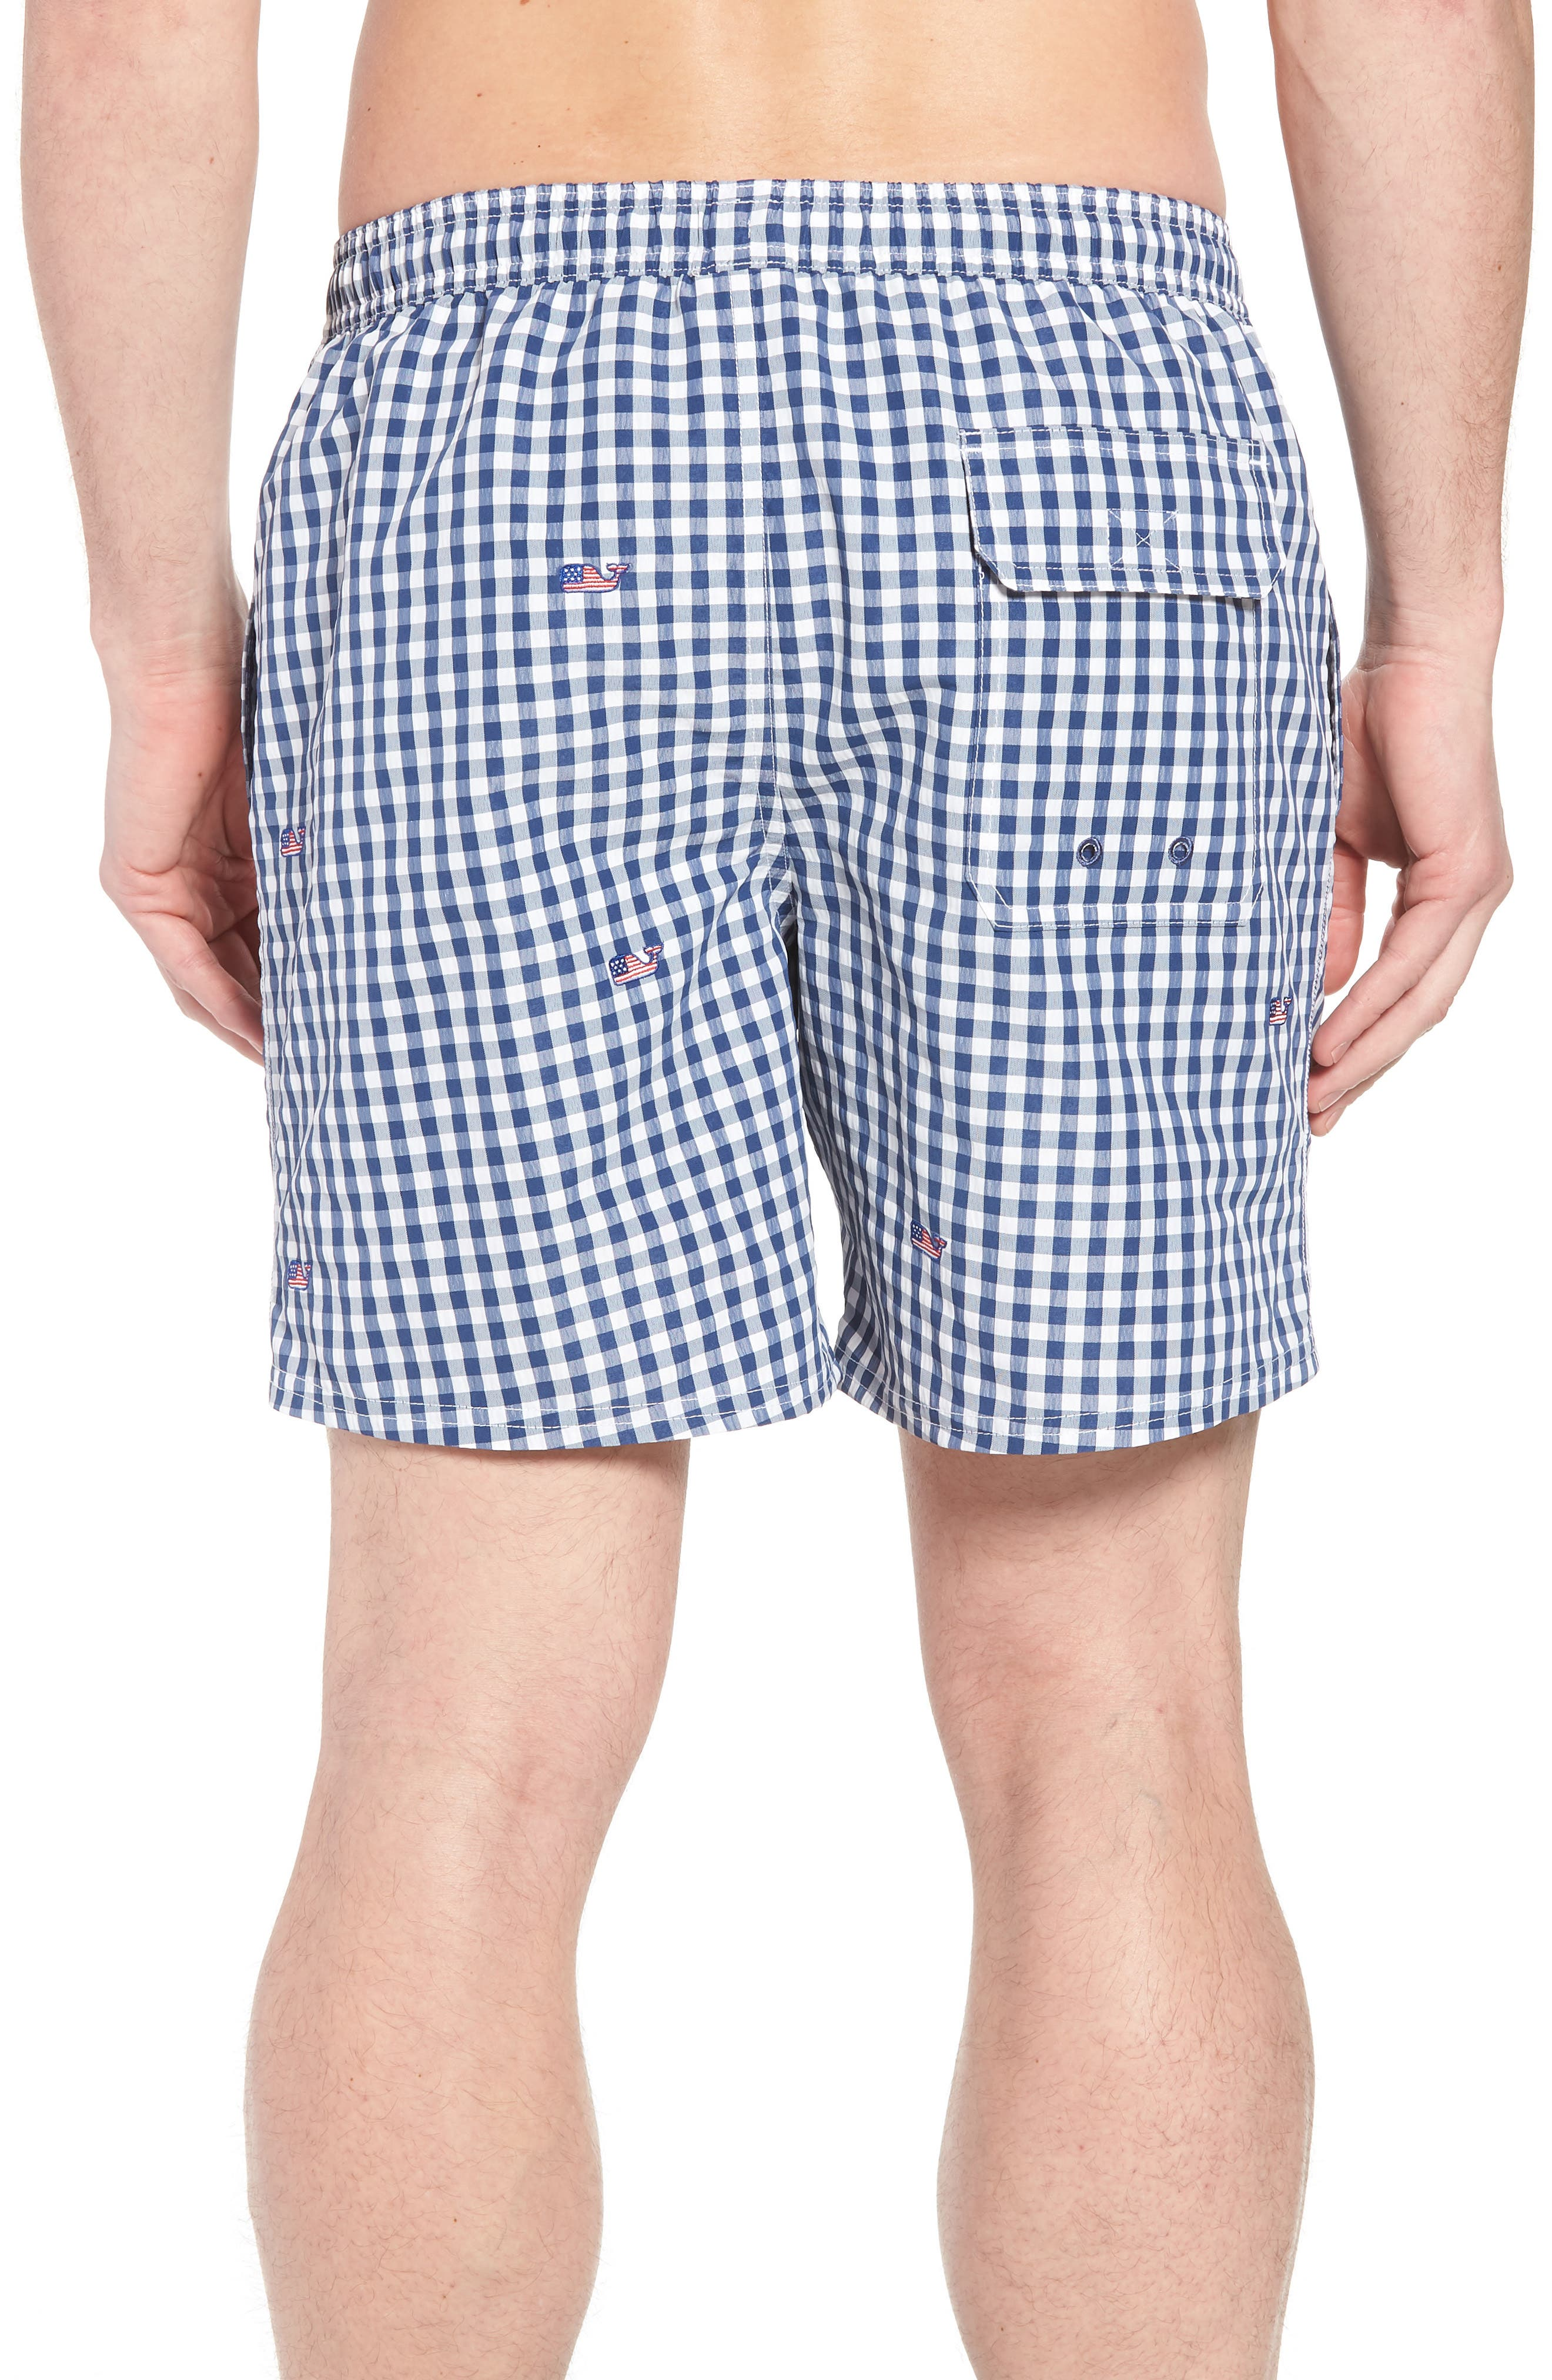 VINEYARD VINES,                             Chappy Flag Whale Embroidered Gingham Swim Trunks,                             Alternate thumbnail 2, color,                             461